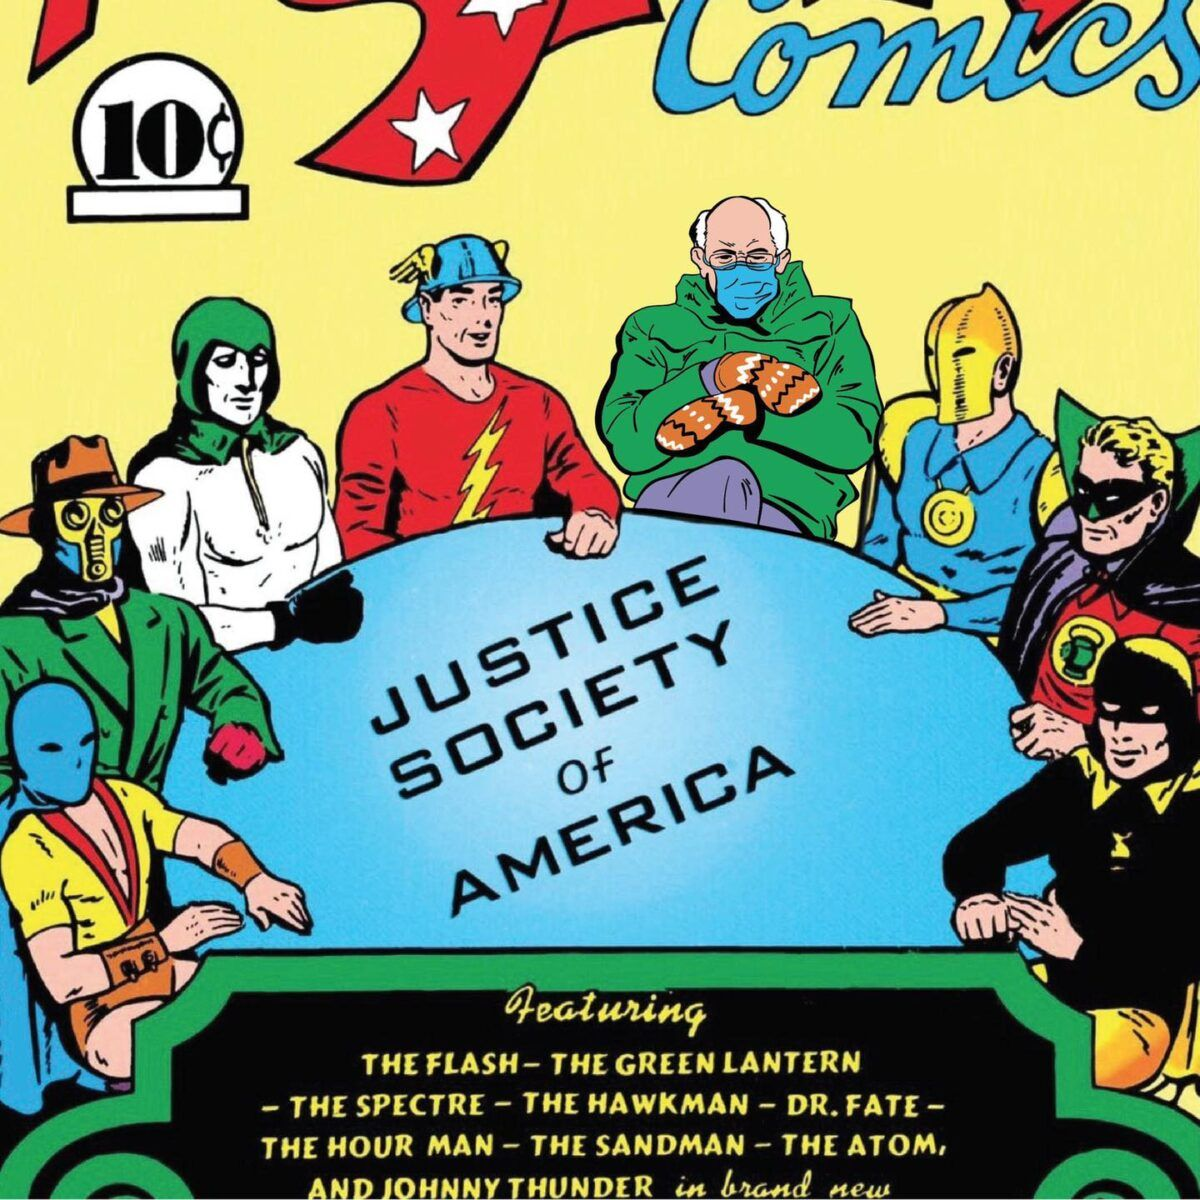 200 Of The Funniest Bernie Sanders Mitten Memes In 2021 Justice Society Of America Johnny Thunders Funny Memes